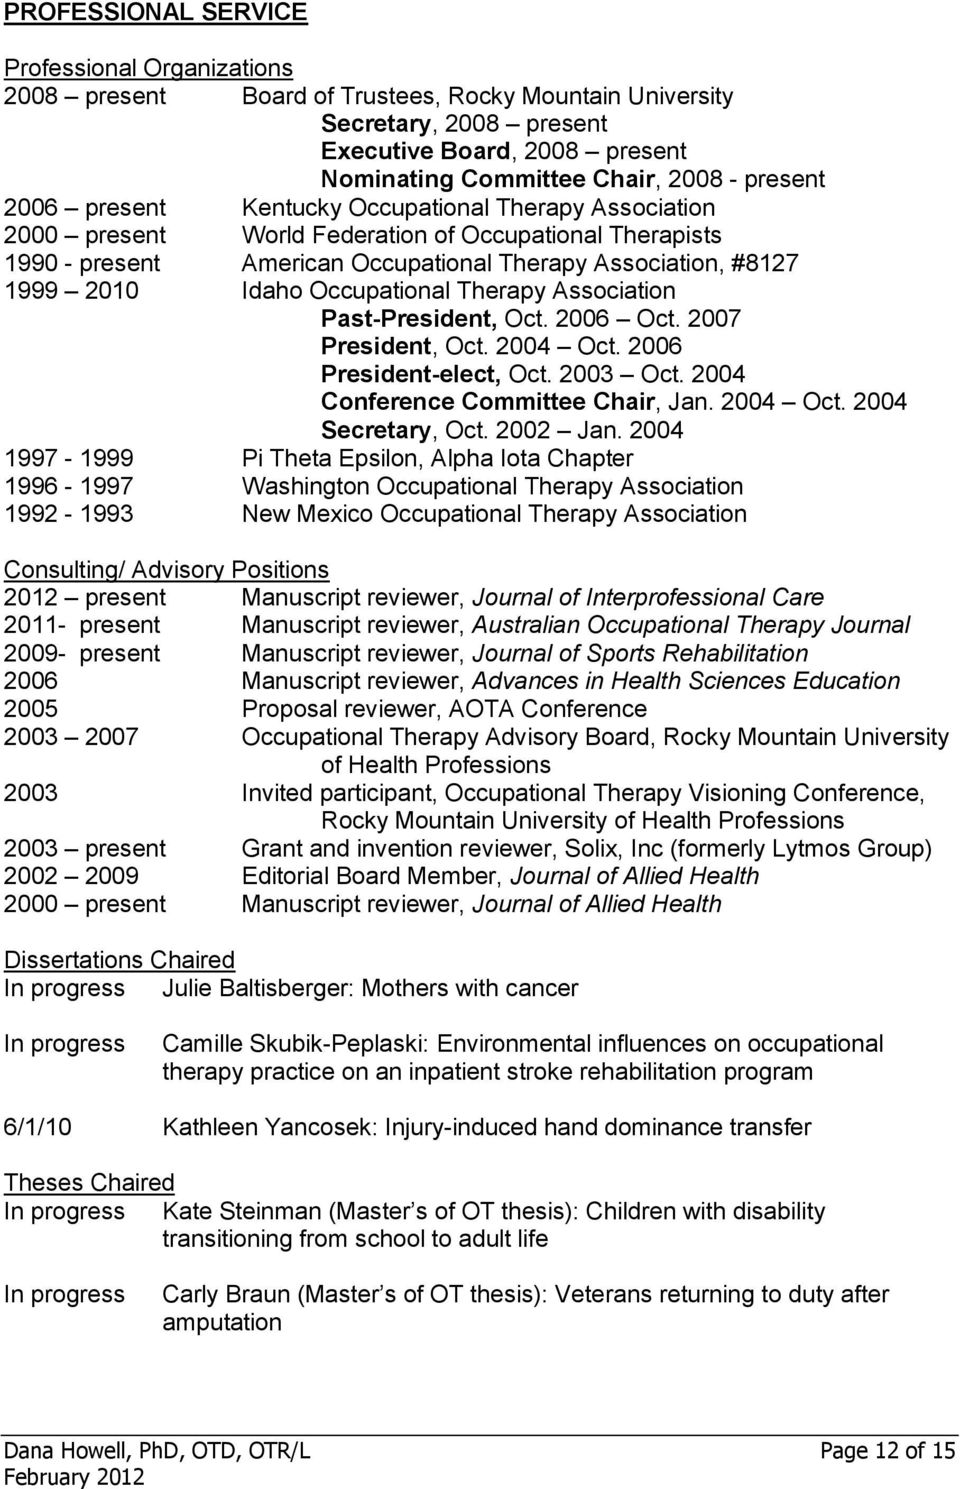 Occupational Therapy Association Past-President, Oct. 2006 Oct. 2007 President, Oct. 2004 Oct. 2006 President-elect, Oct. 2003 Oct. 2004 Conference Committee Chair, Jan. 2004 Oct. 2004 Secretary, Oct.